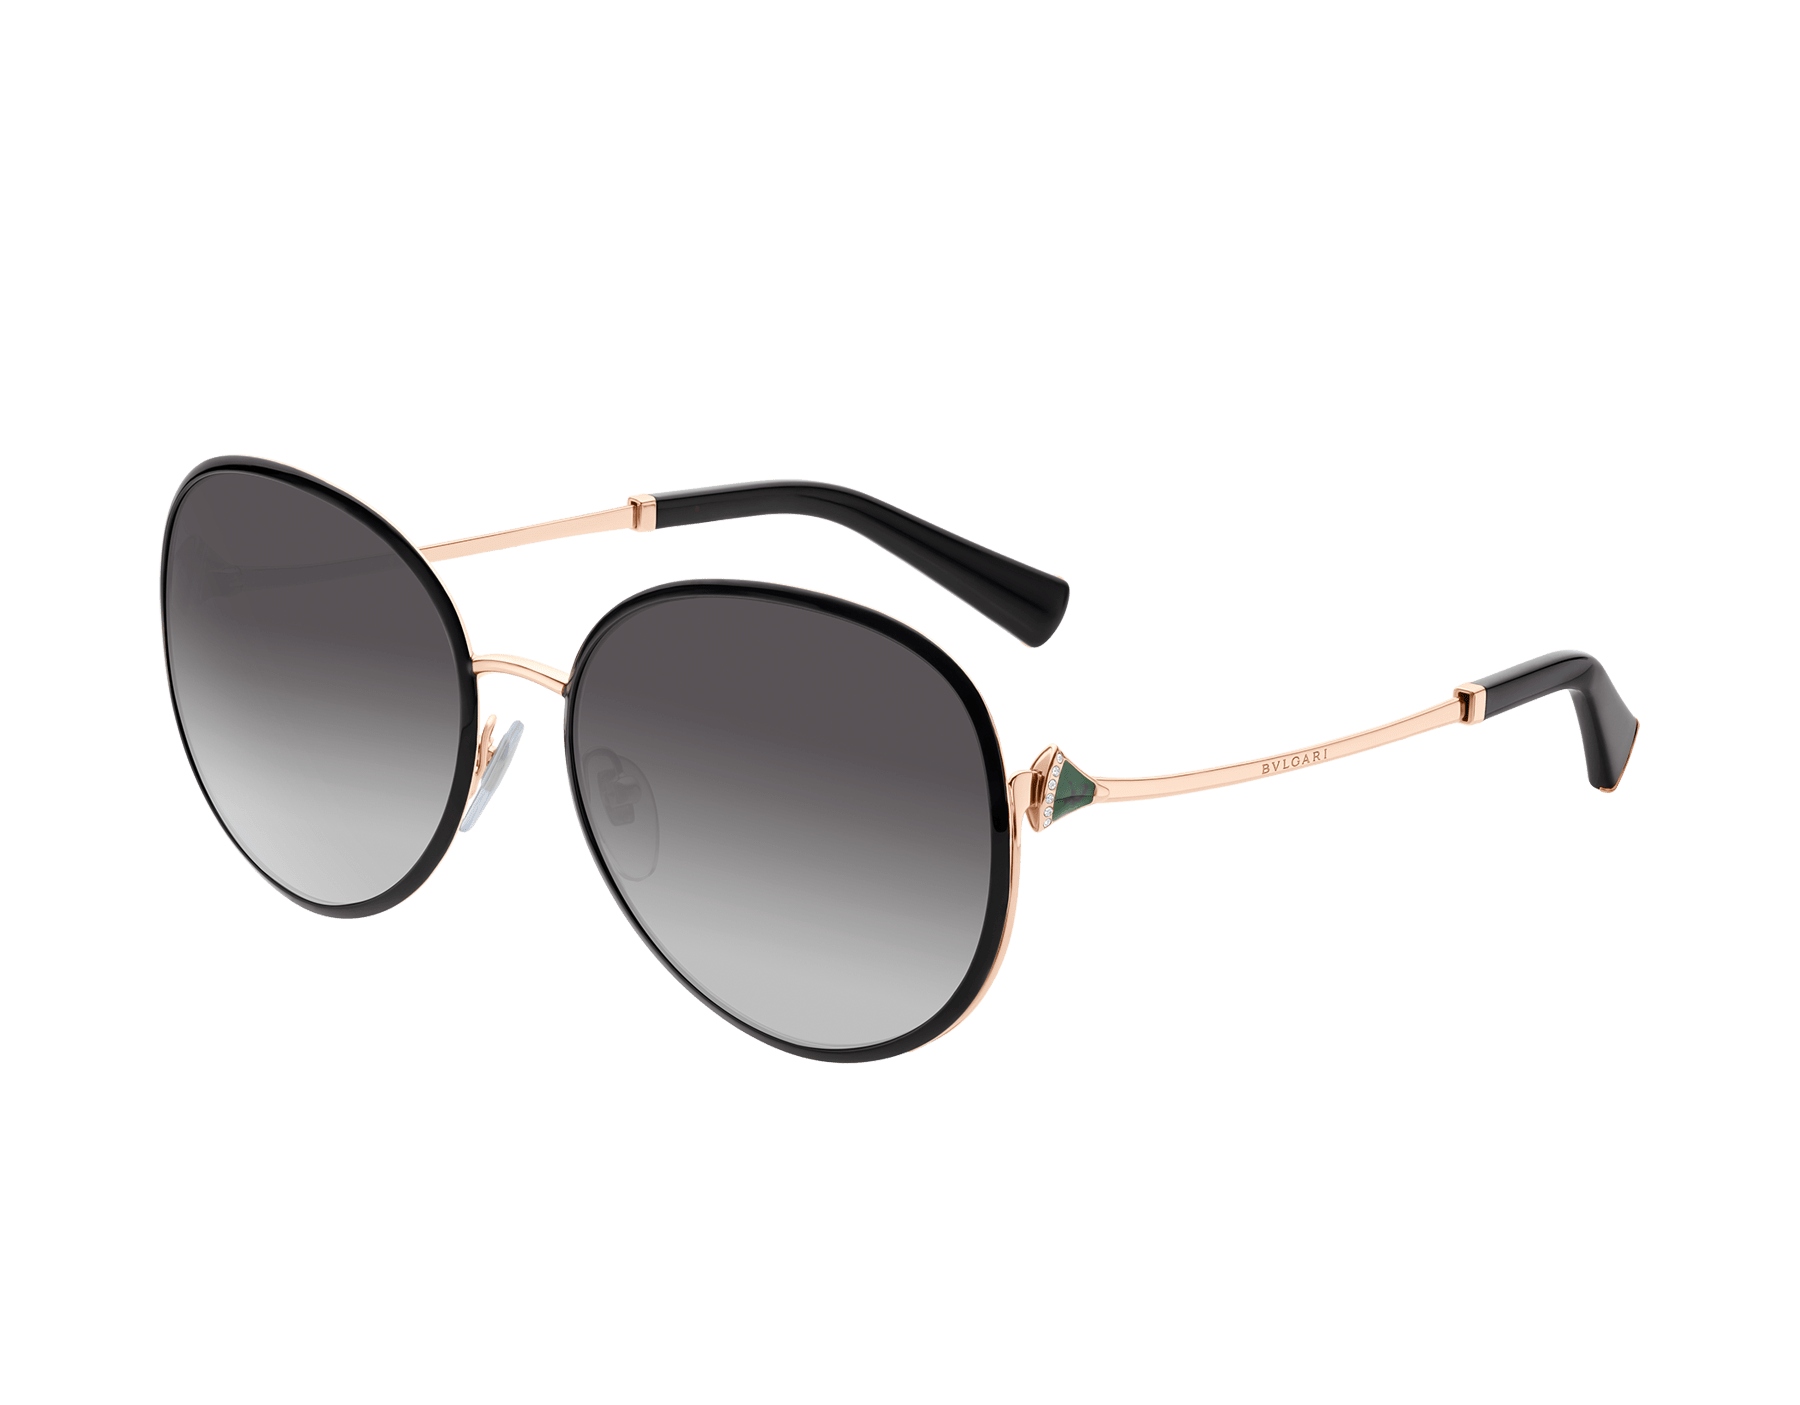 Divas' Dream rounded metal sunglasses. 903594 image 1